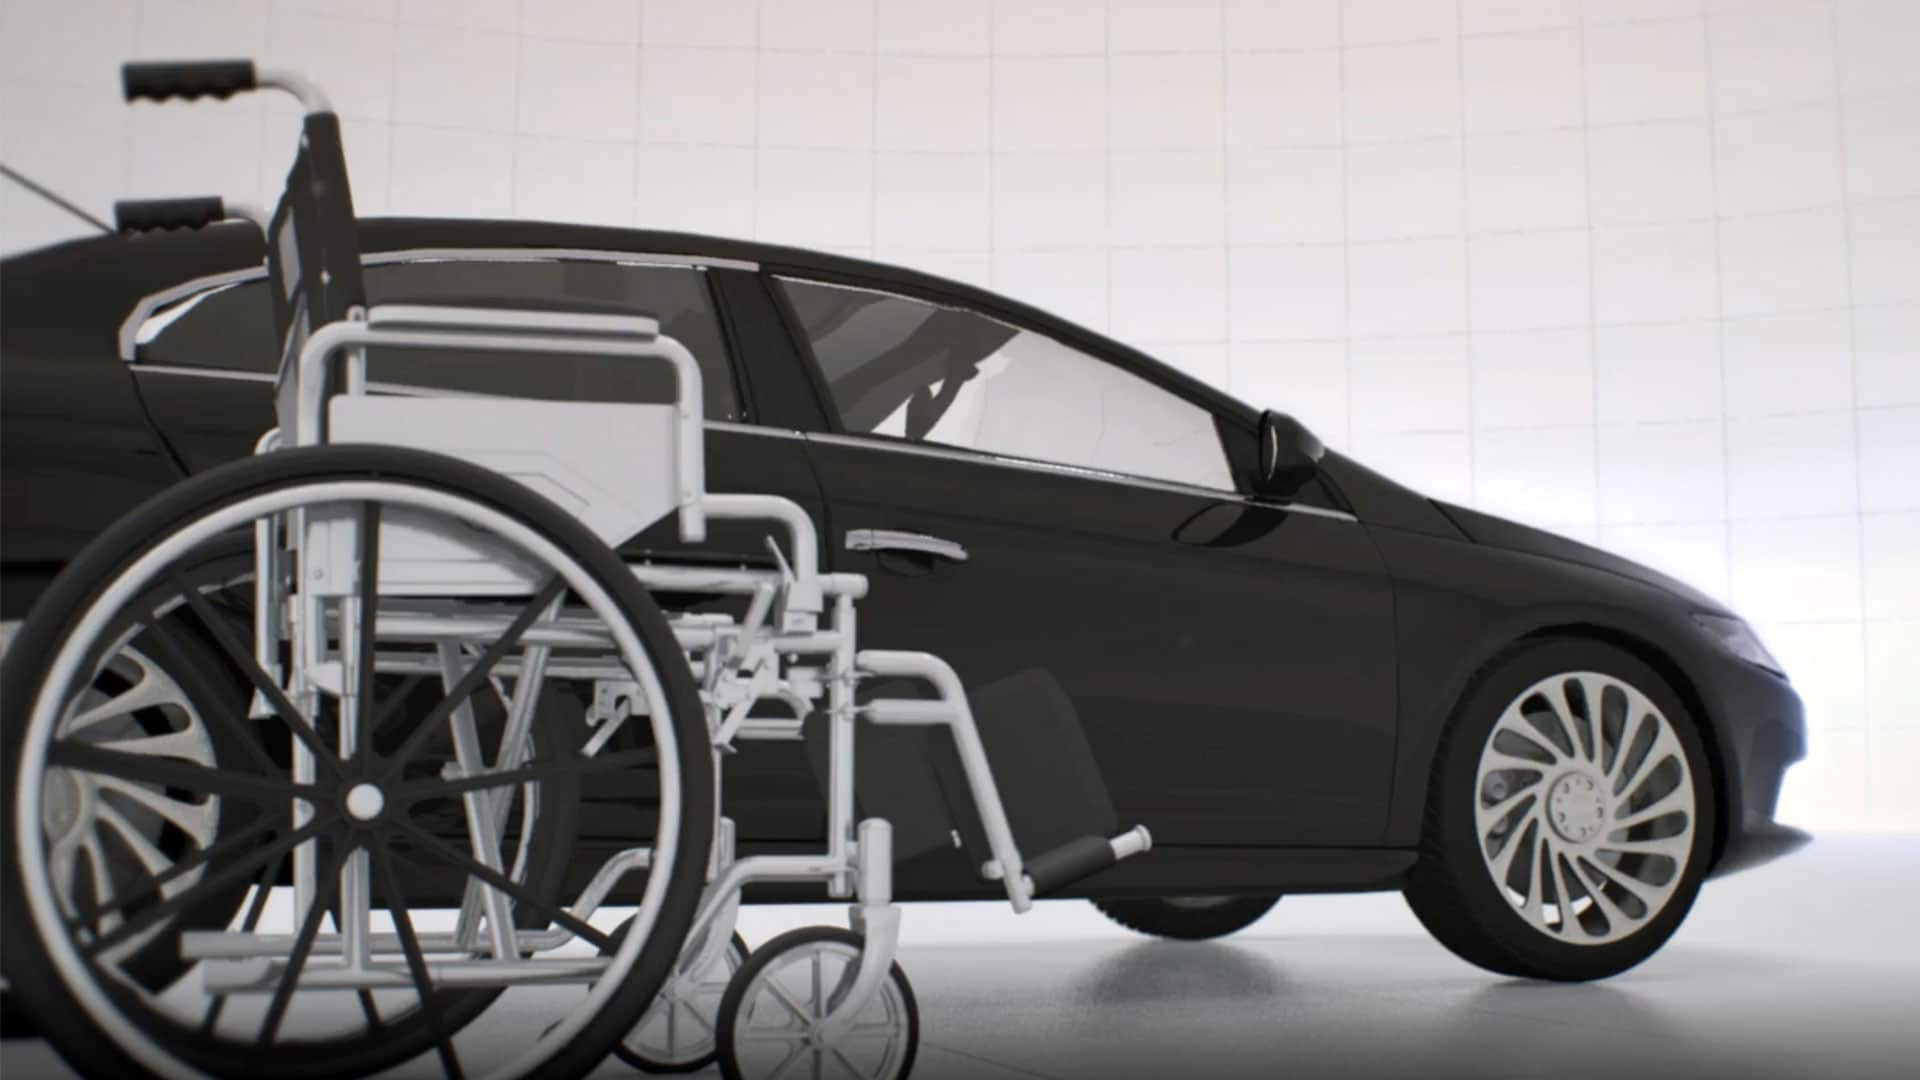 Wheelchair to Car Transfer (Training Video & Guide)